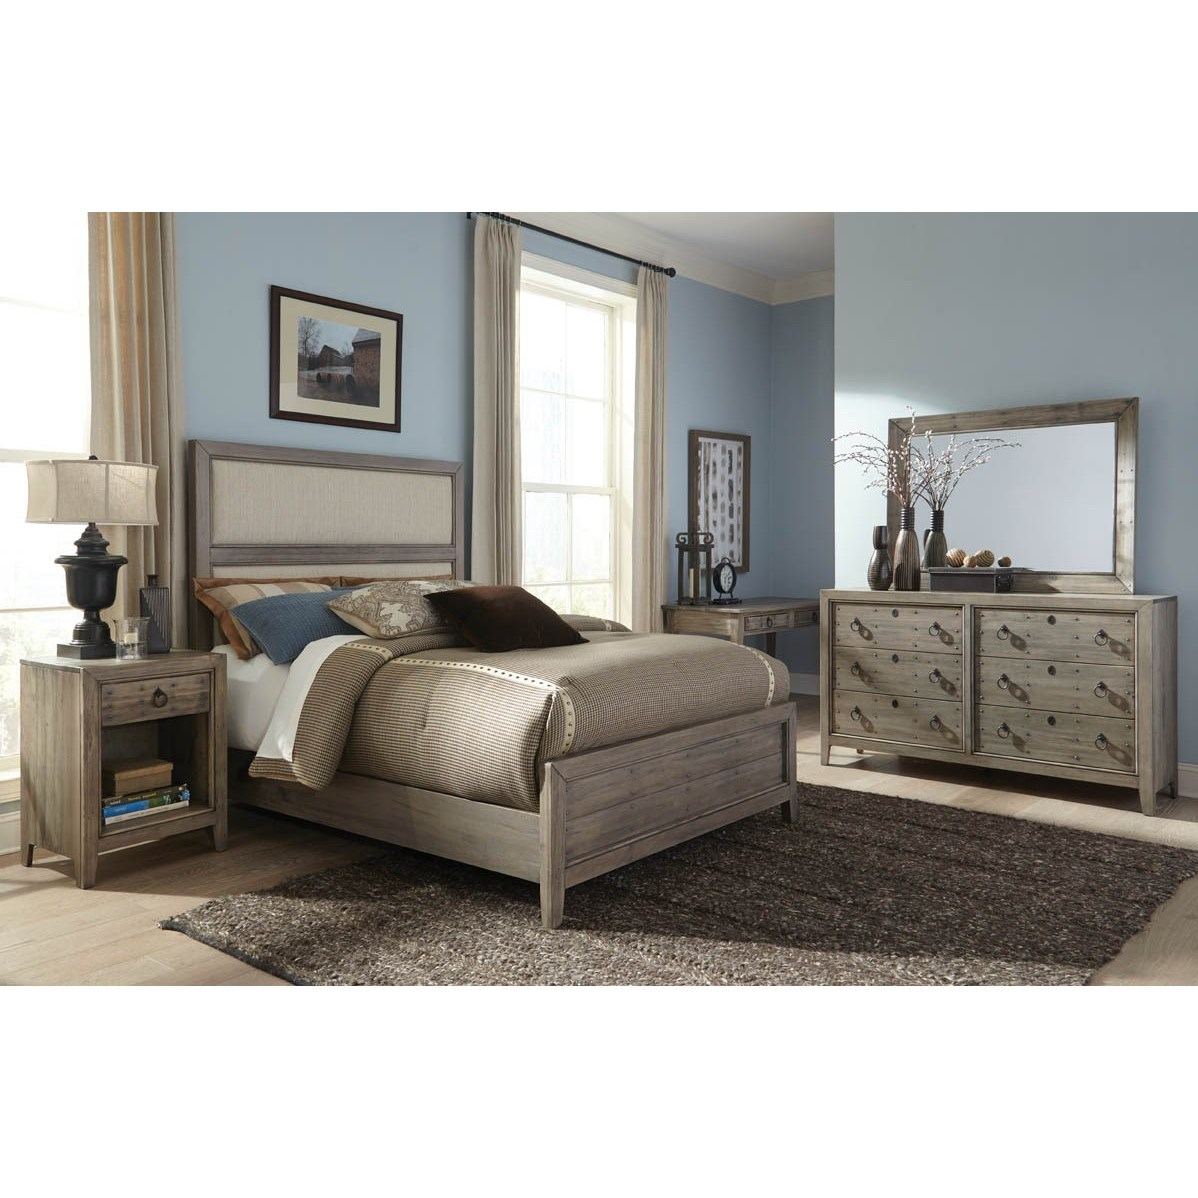 The Distillery King Bedroom Group by Durham at Stoney Creek Furniture